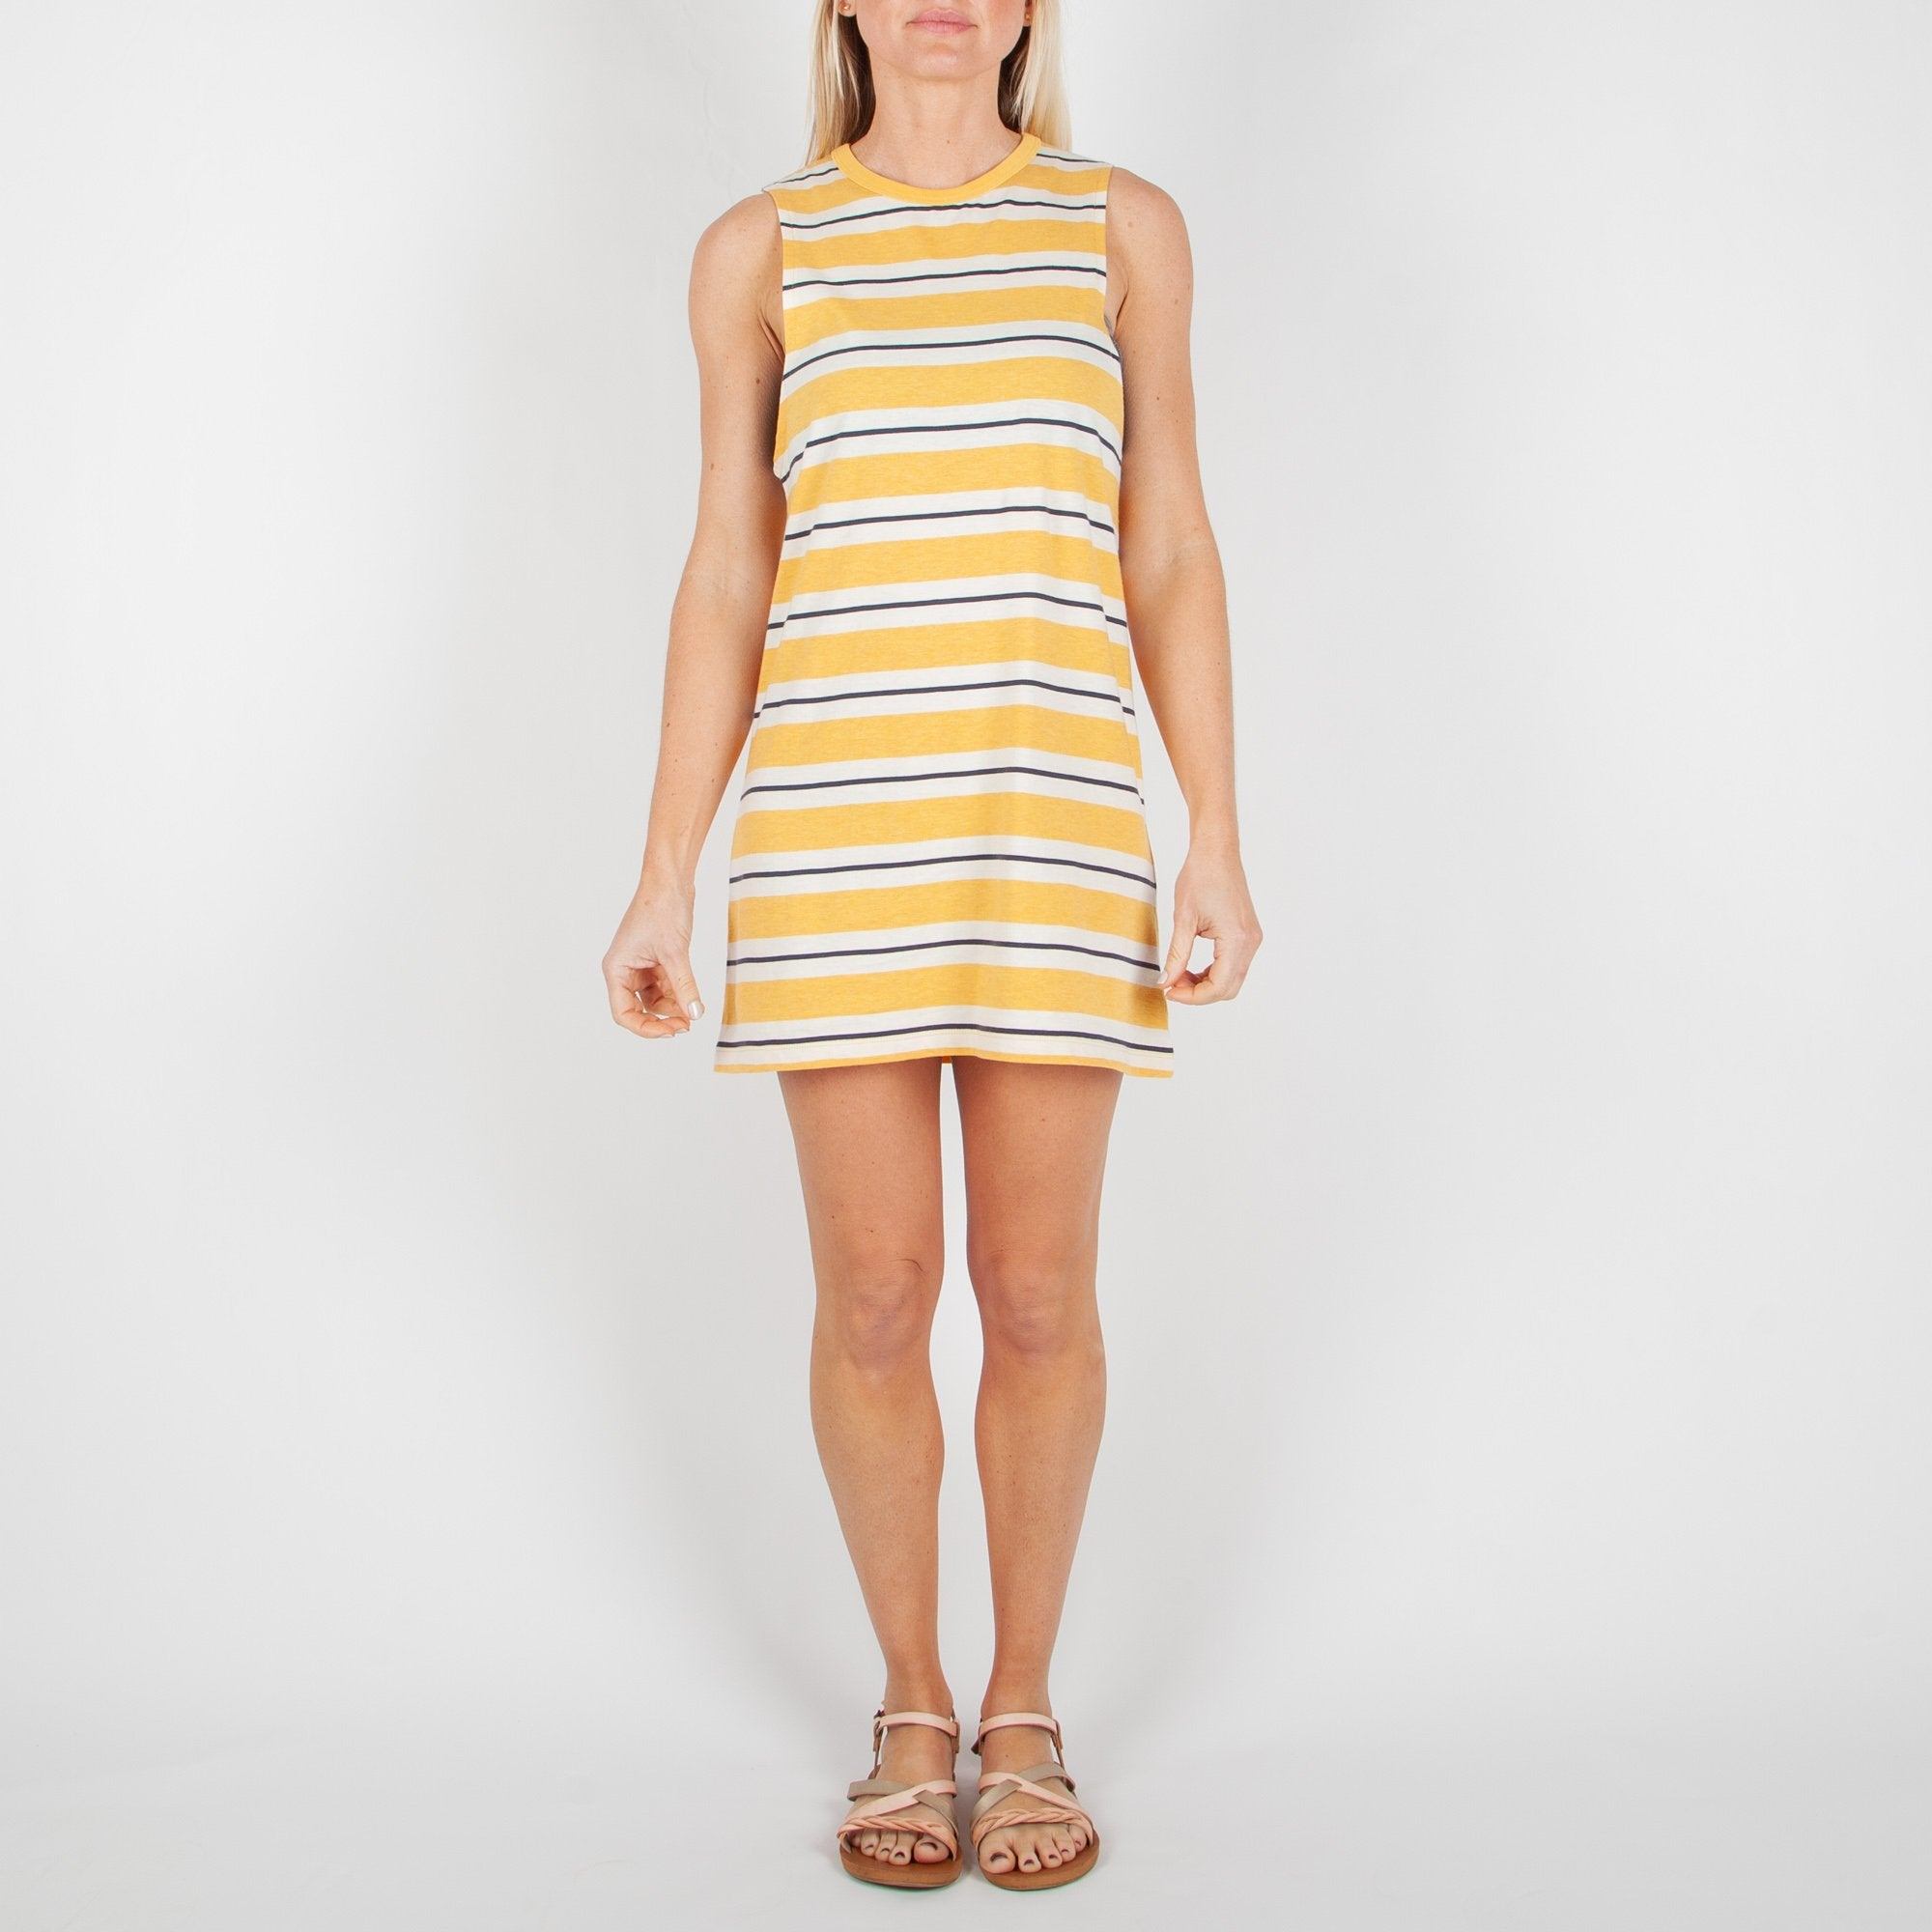 South Coast Dress - Golden Yellow Stripe image 2